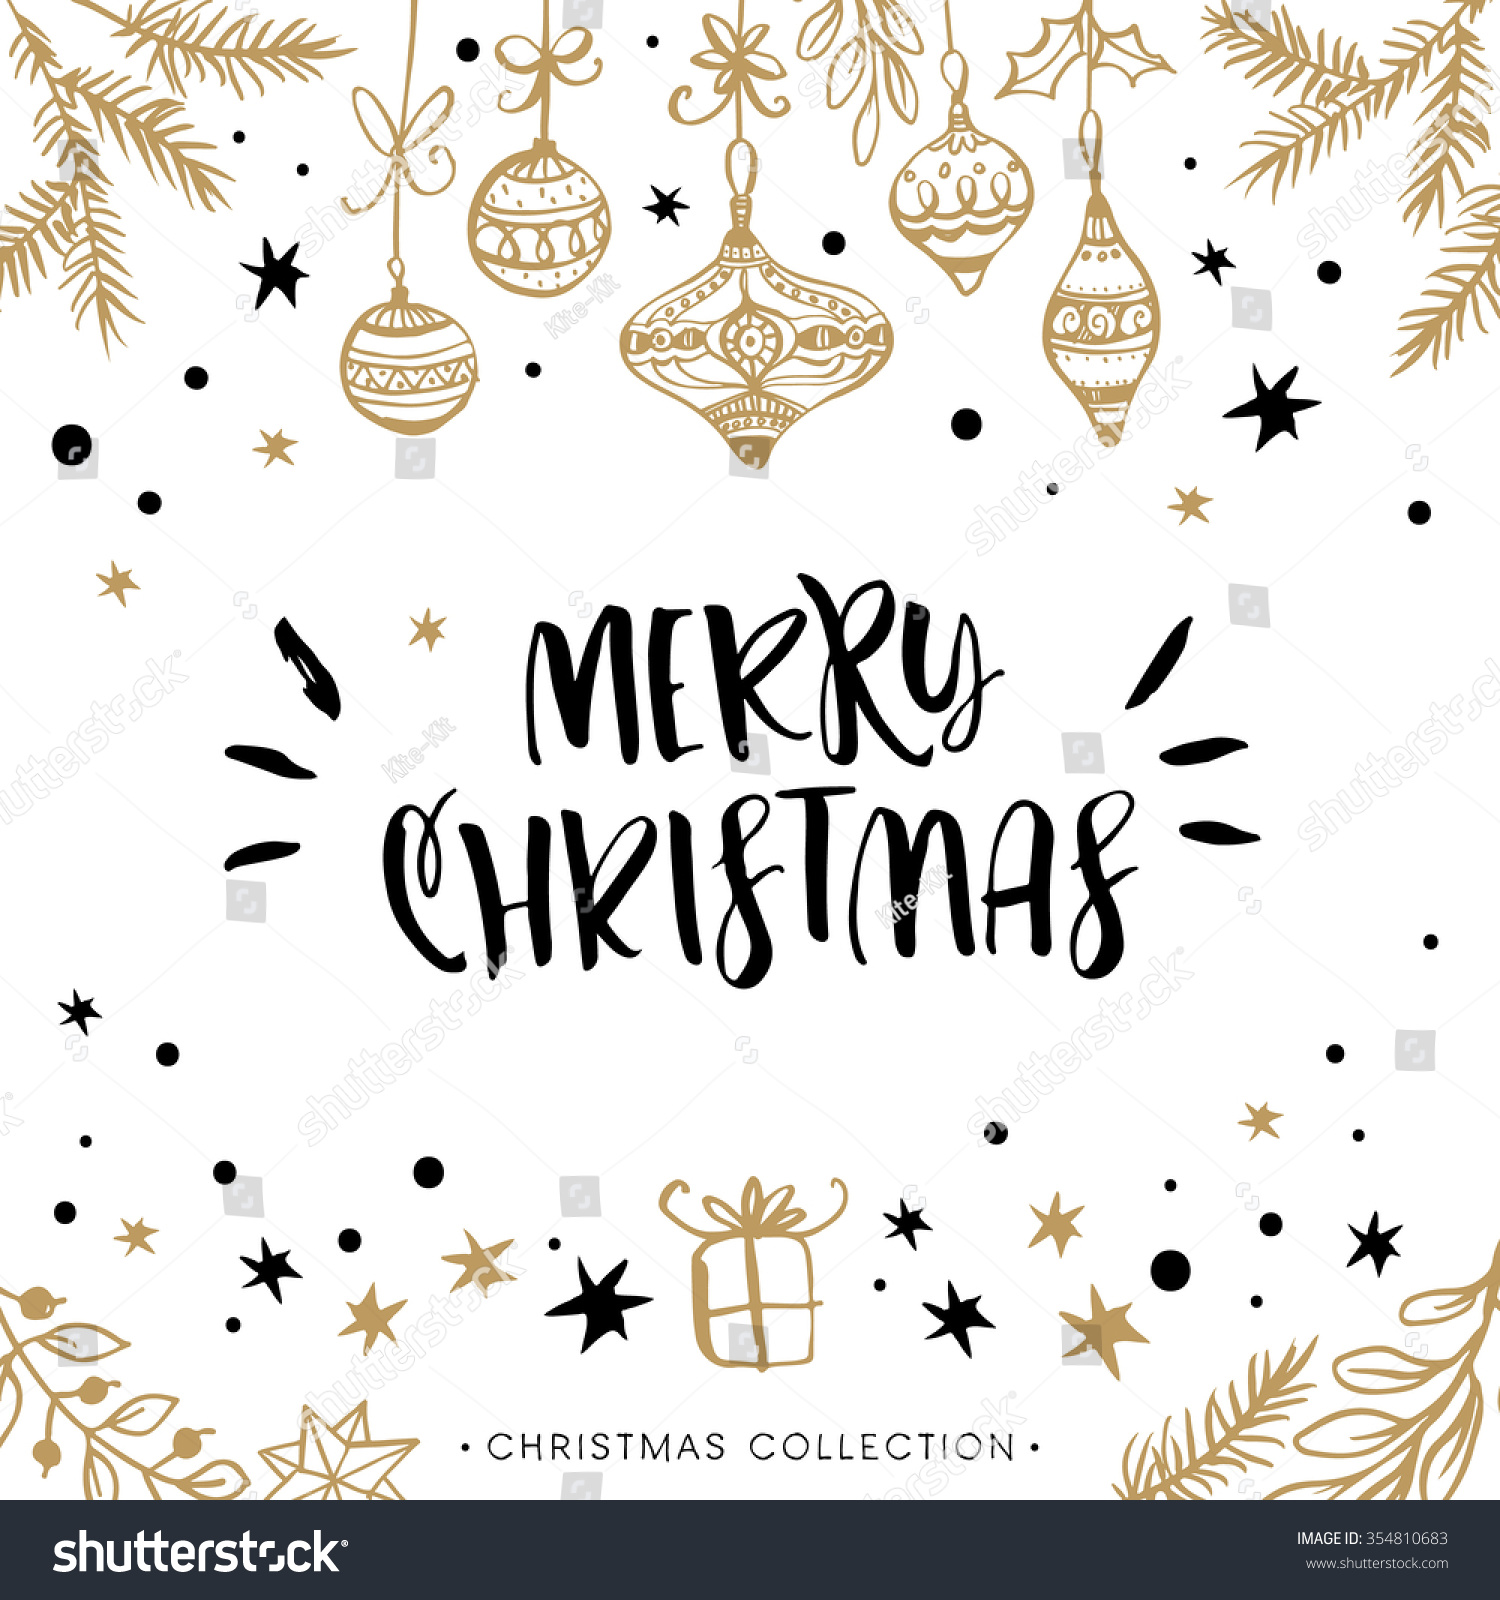 merry christmas holiday greeting card with calligraphy hand drawn design elements handwritten modern